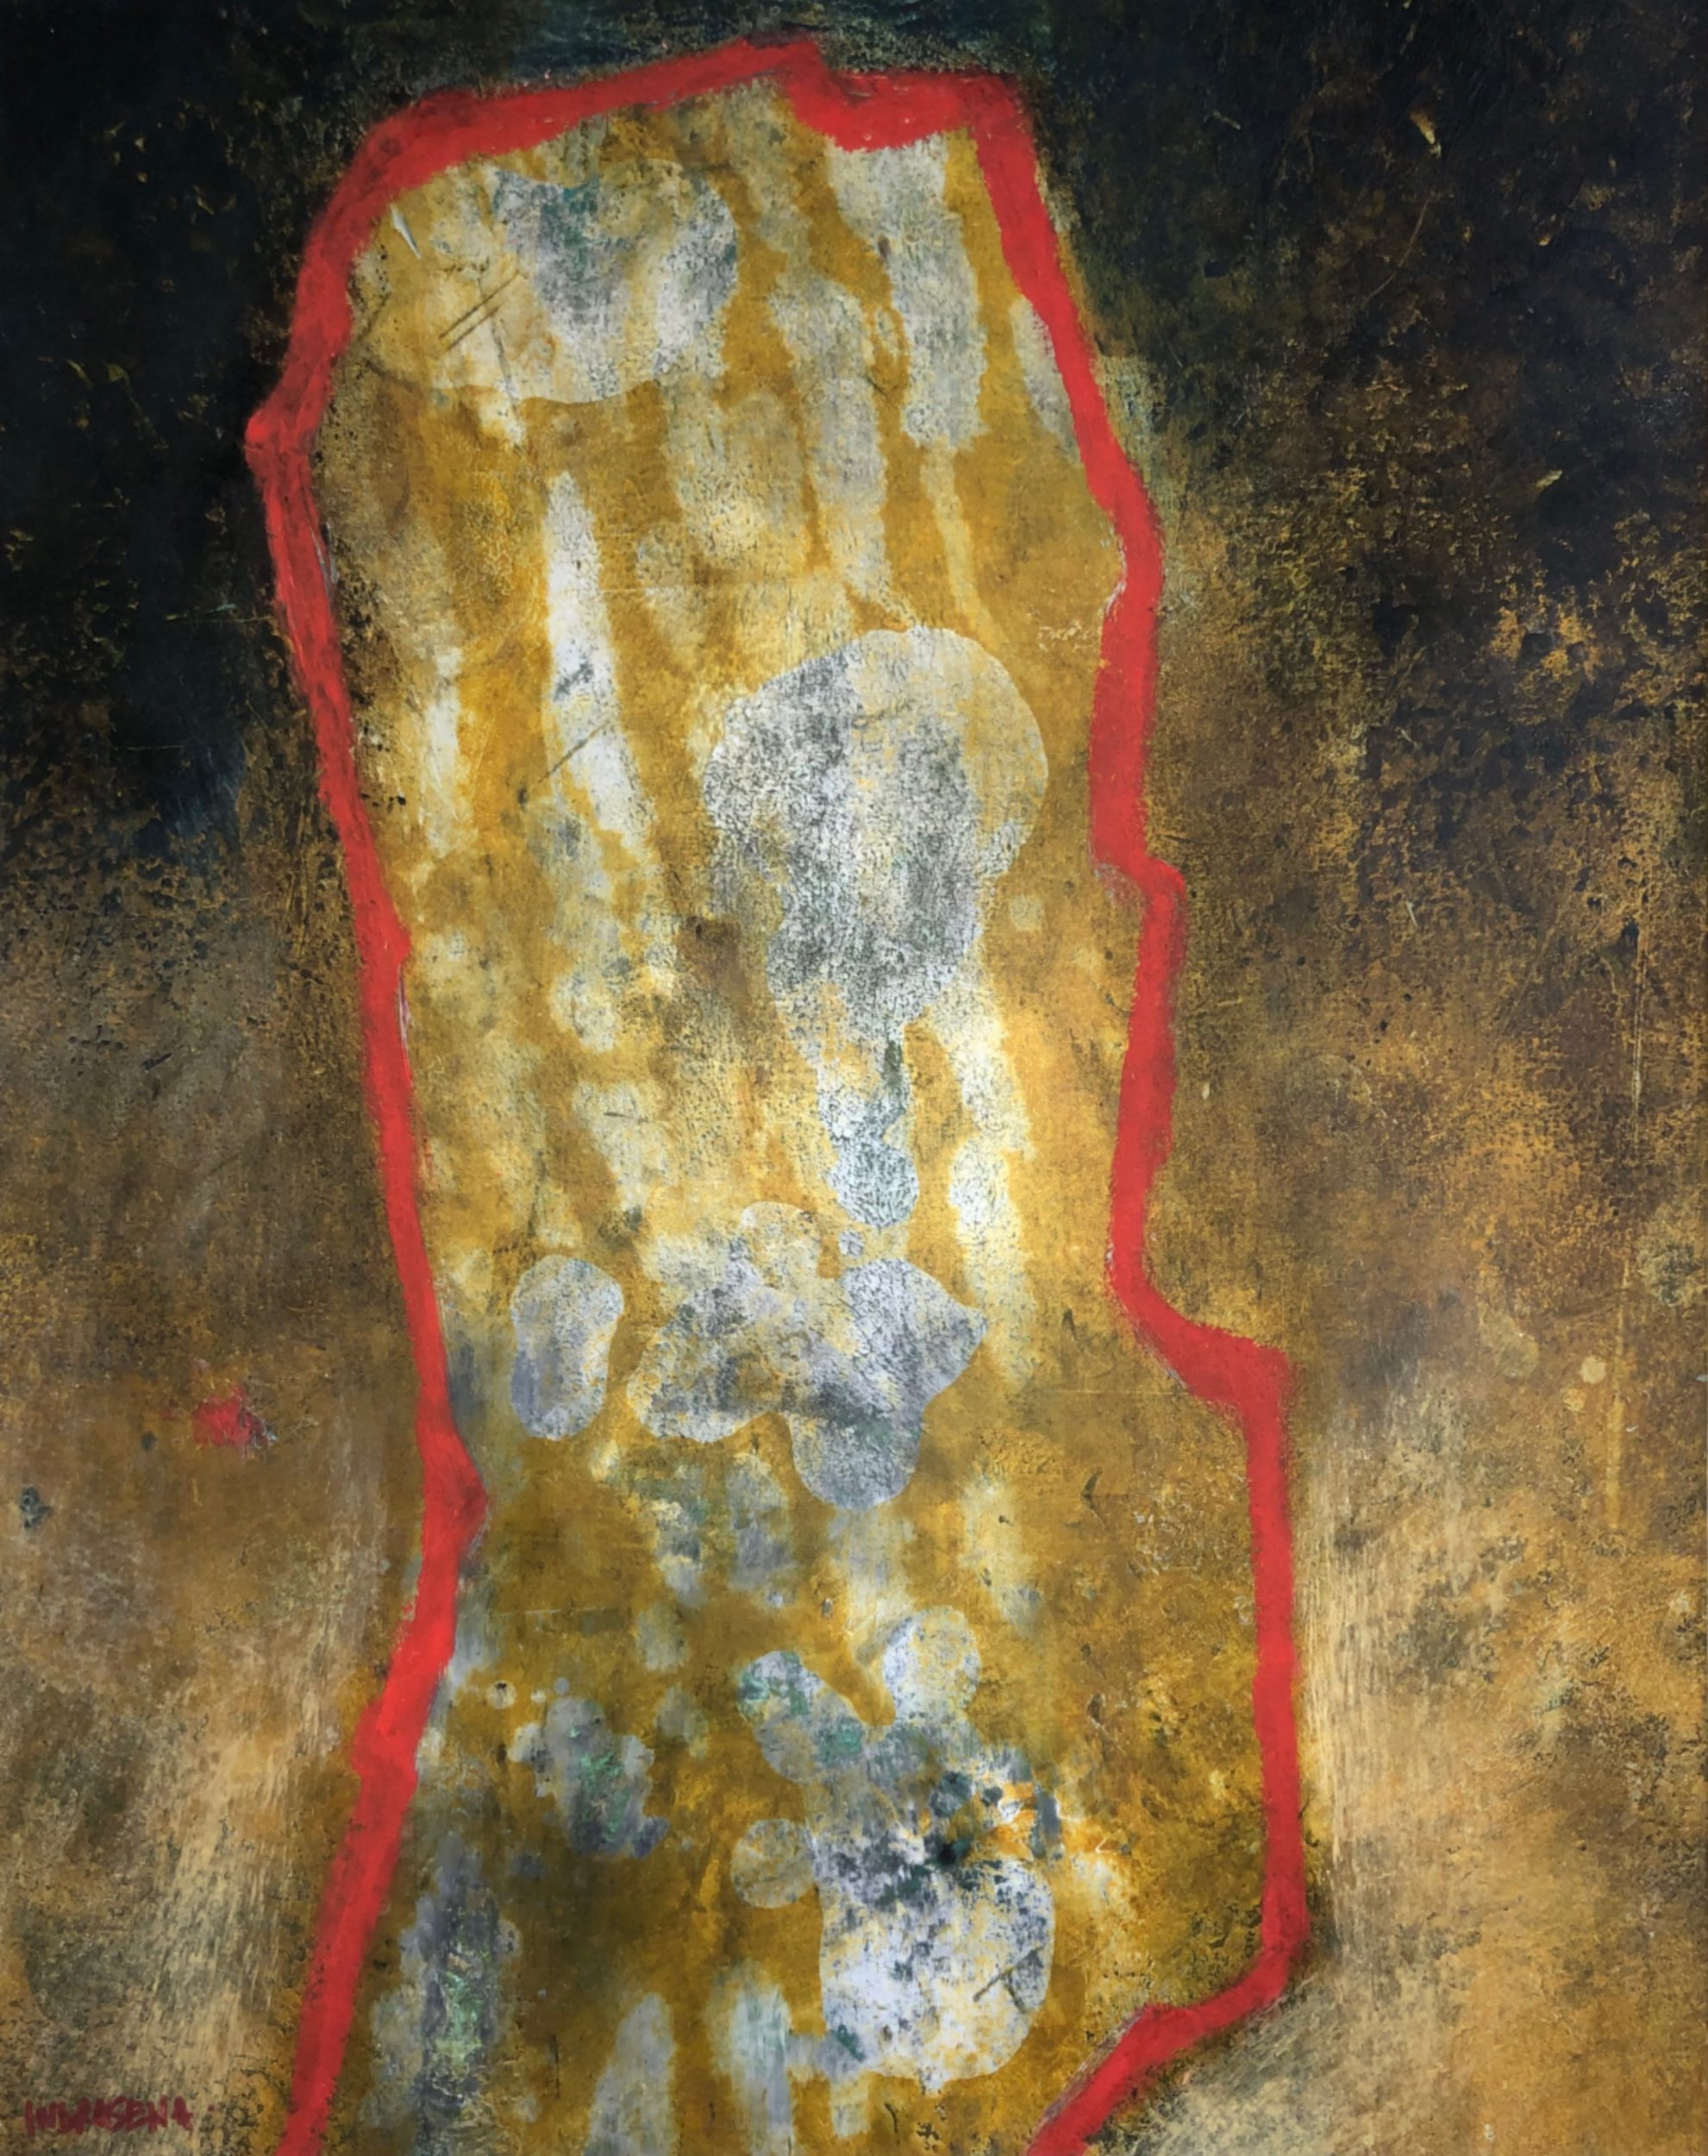 Walls of Evolution 40x50 ColdWax & Oil Mixed Media depicting cave painting and mark of human identity